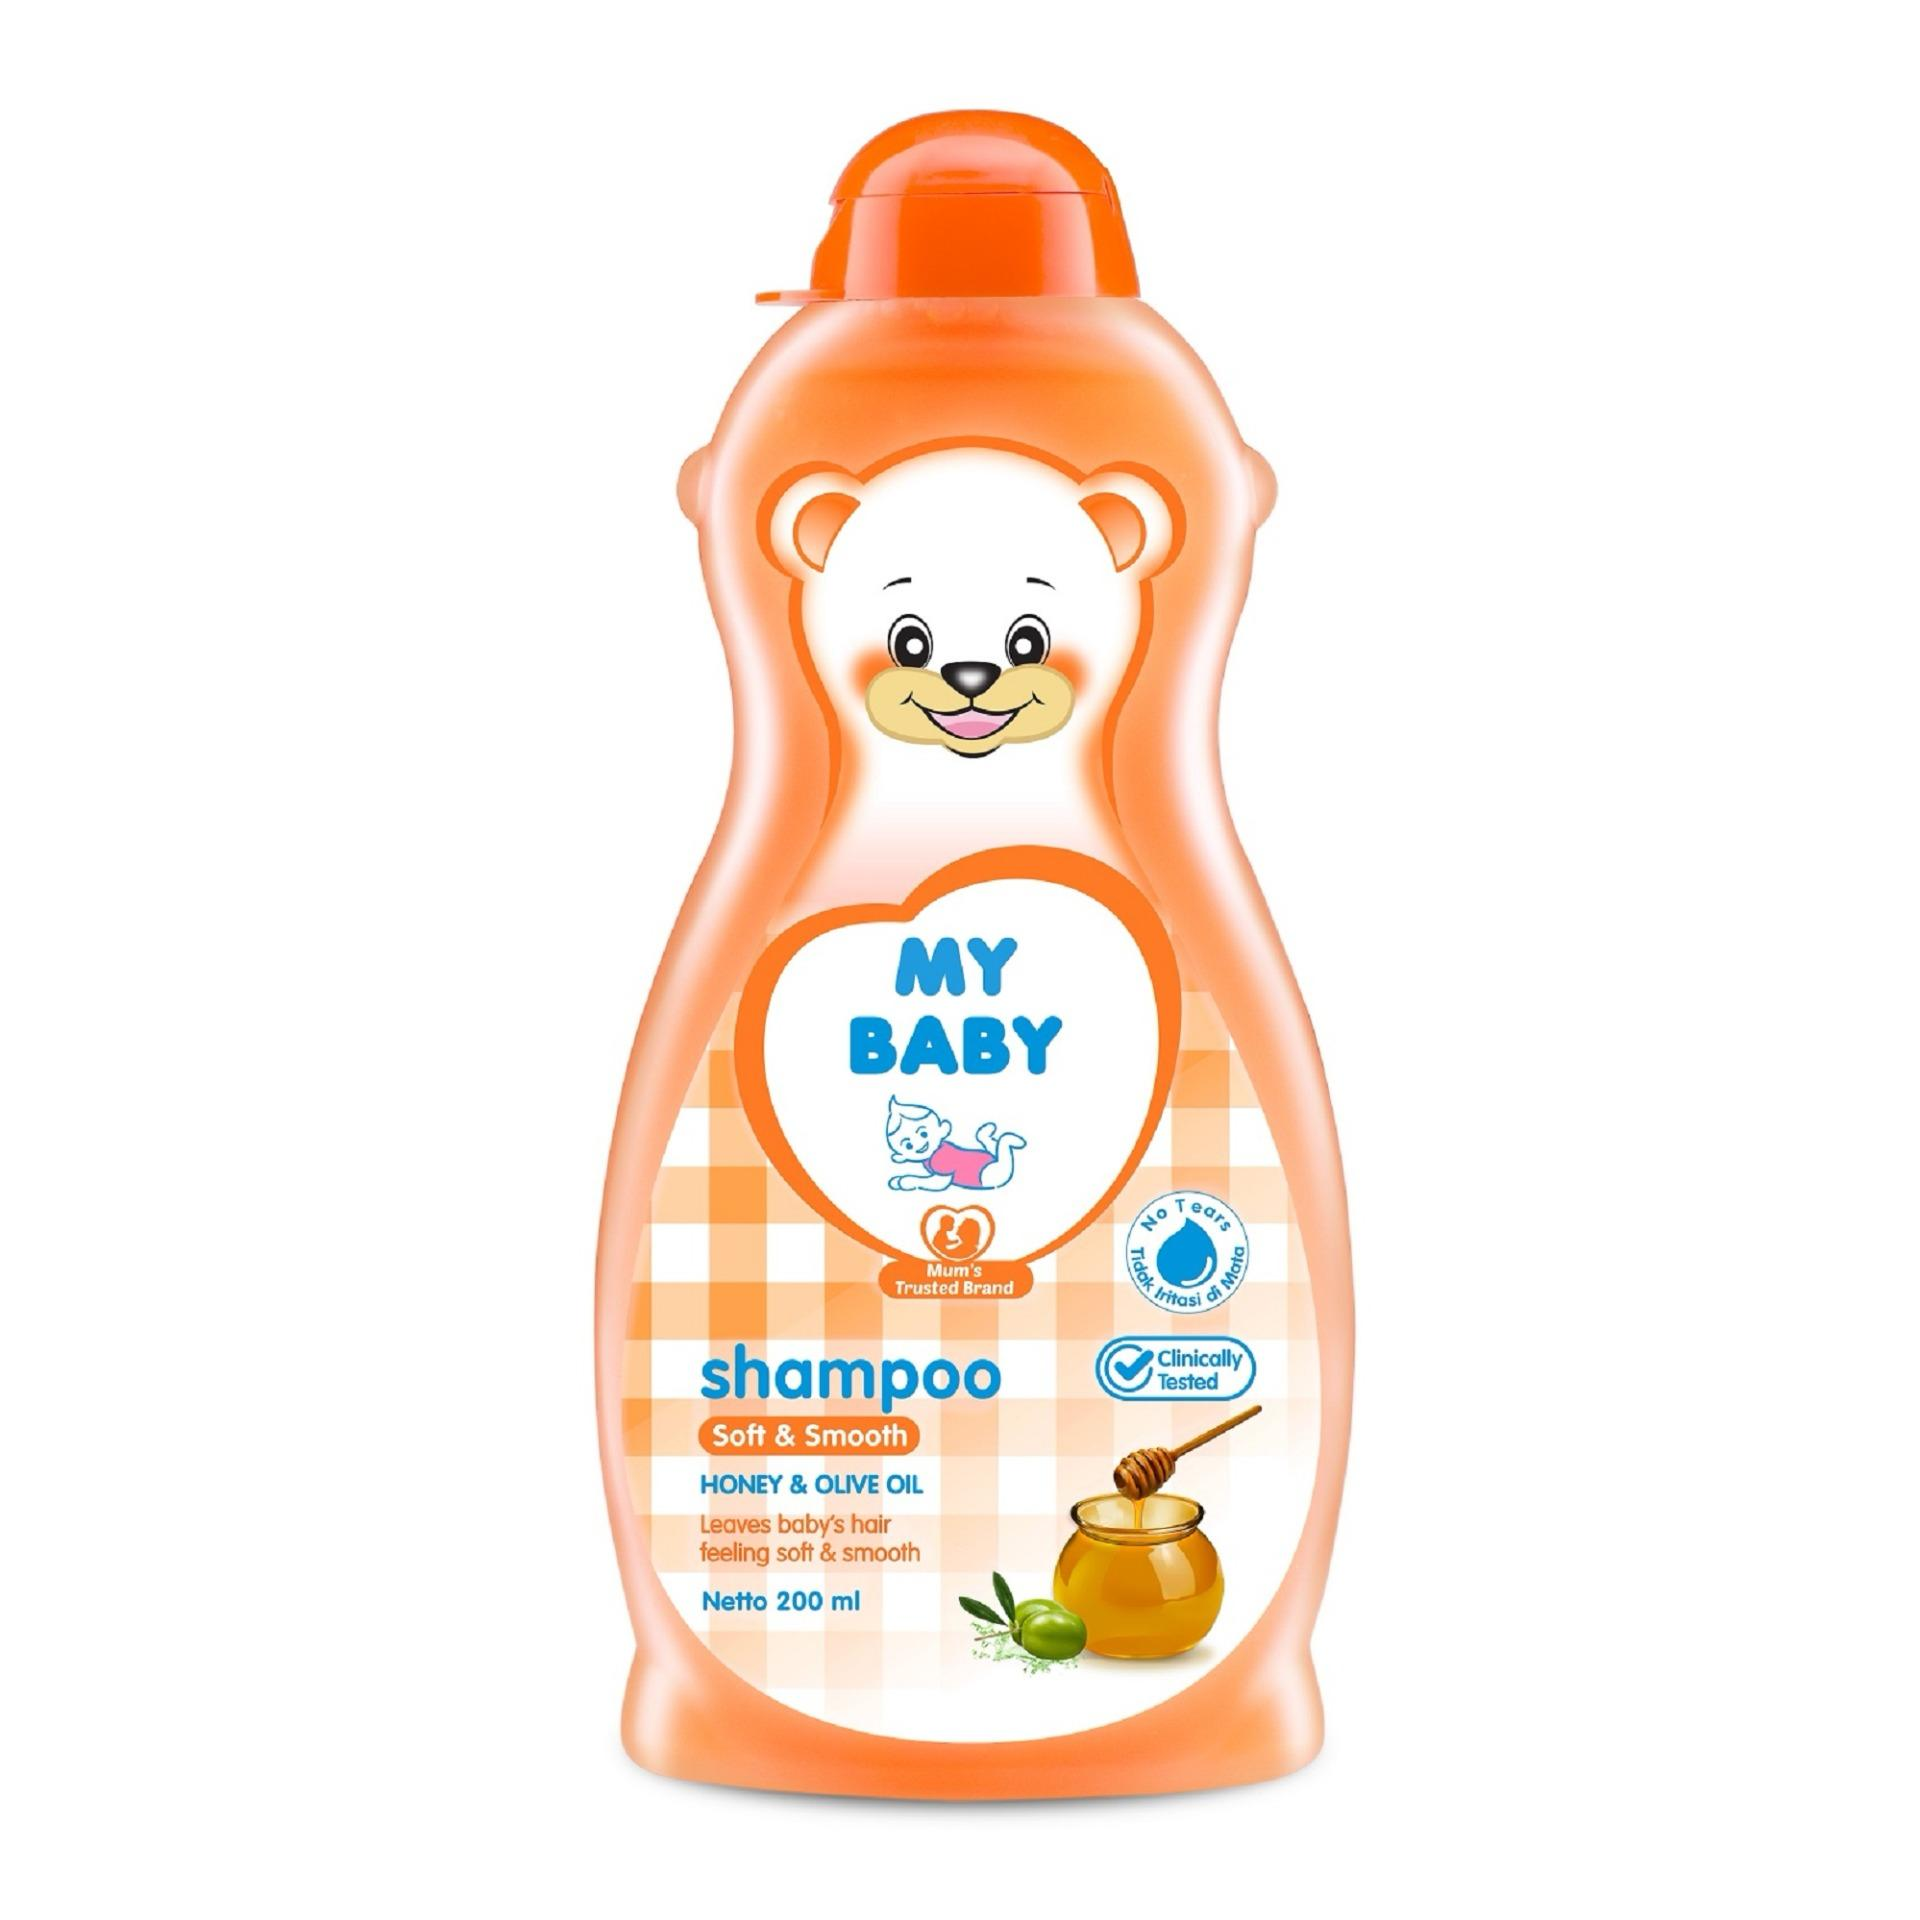 My Baby Fabric Plus Ironing Aid Sweet Floral Softener 700 Ml2pcs Cussons Mild Gentle Ml 1500 Cari Source